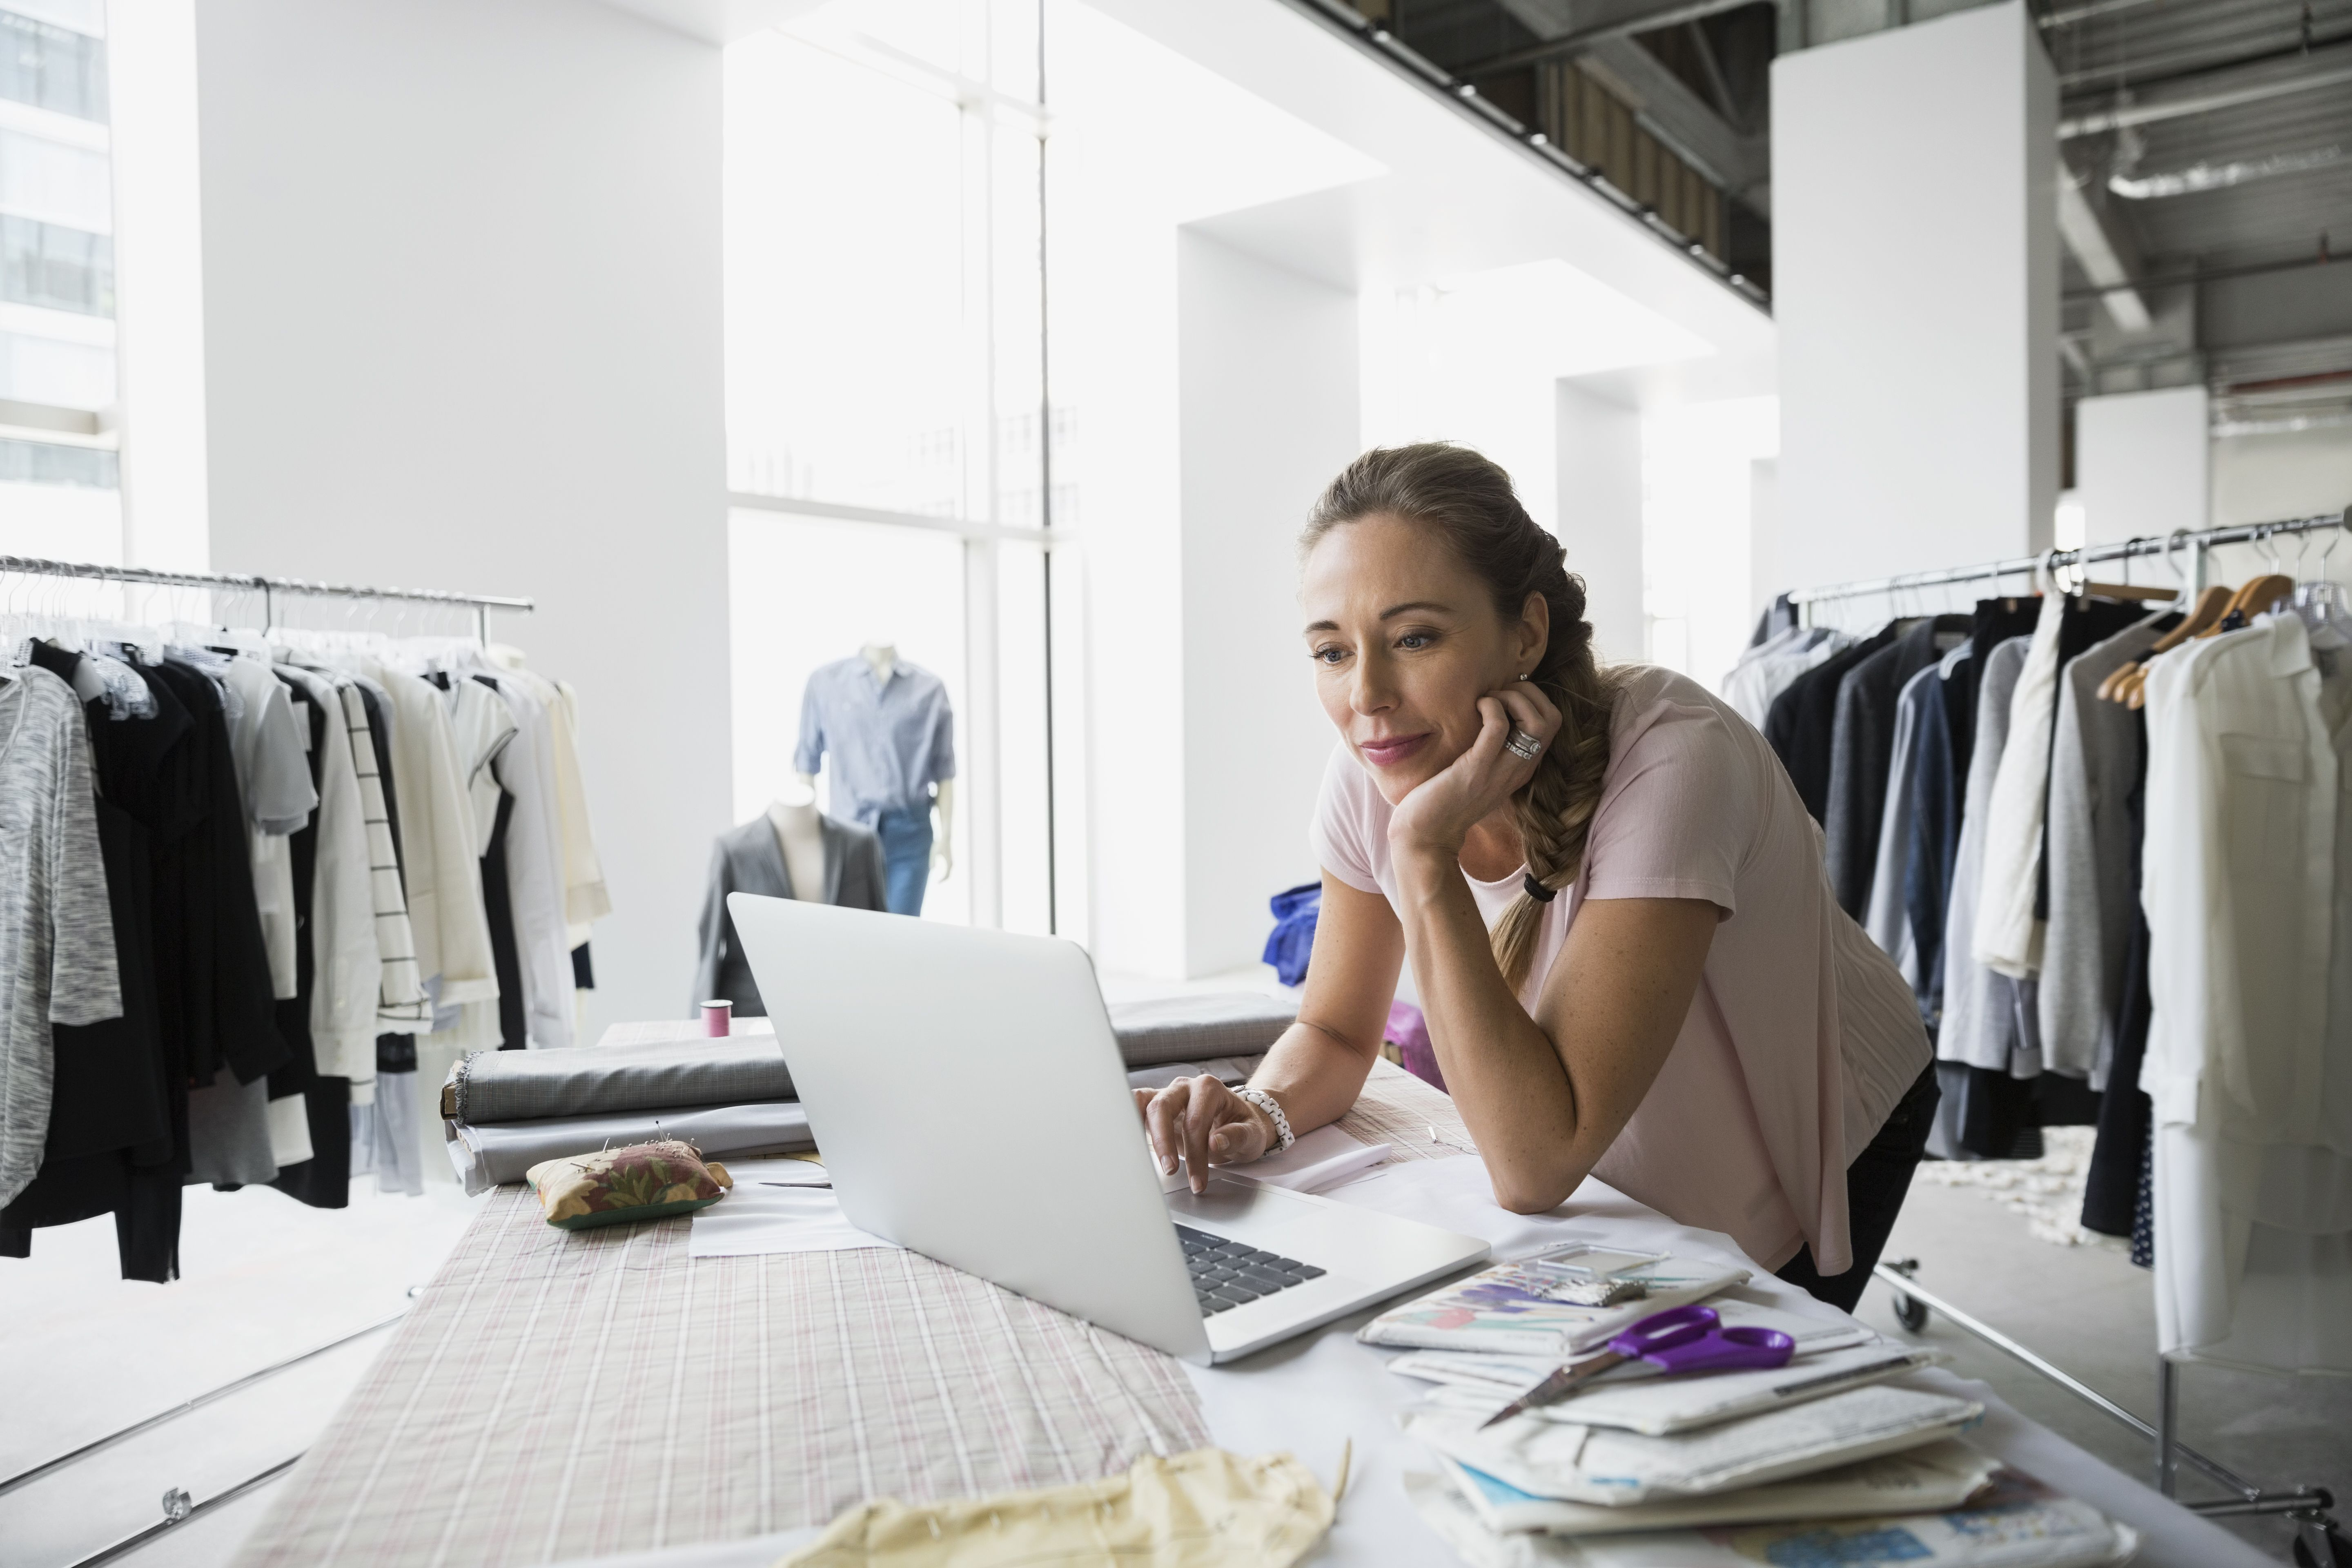 See How to Manage Your Bank Accounts When Self-Employed